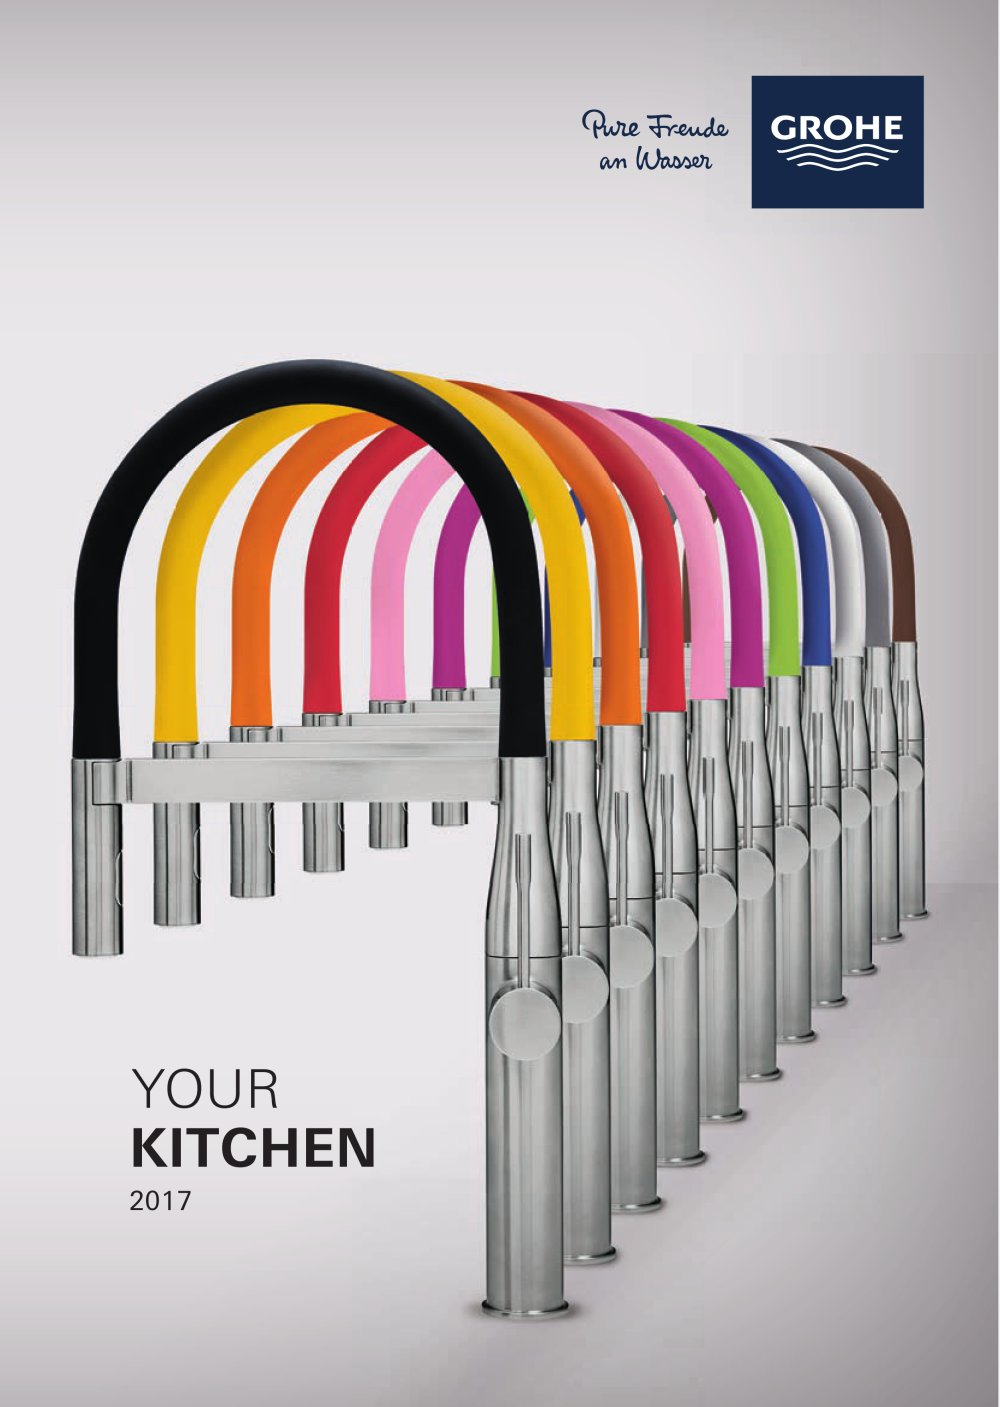 YOUR KITCHEN 2017 - GROHE - PDF Catalogues | Documentation | Brochures